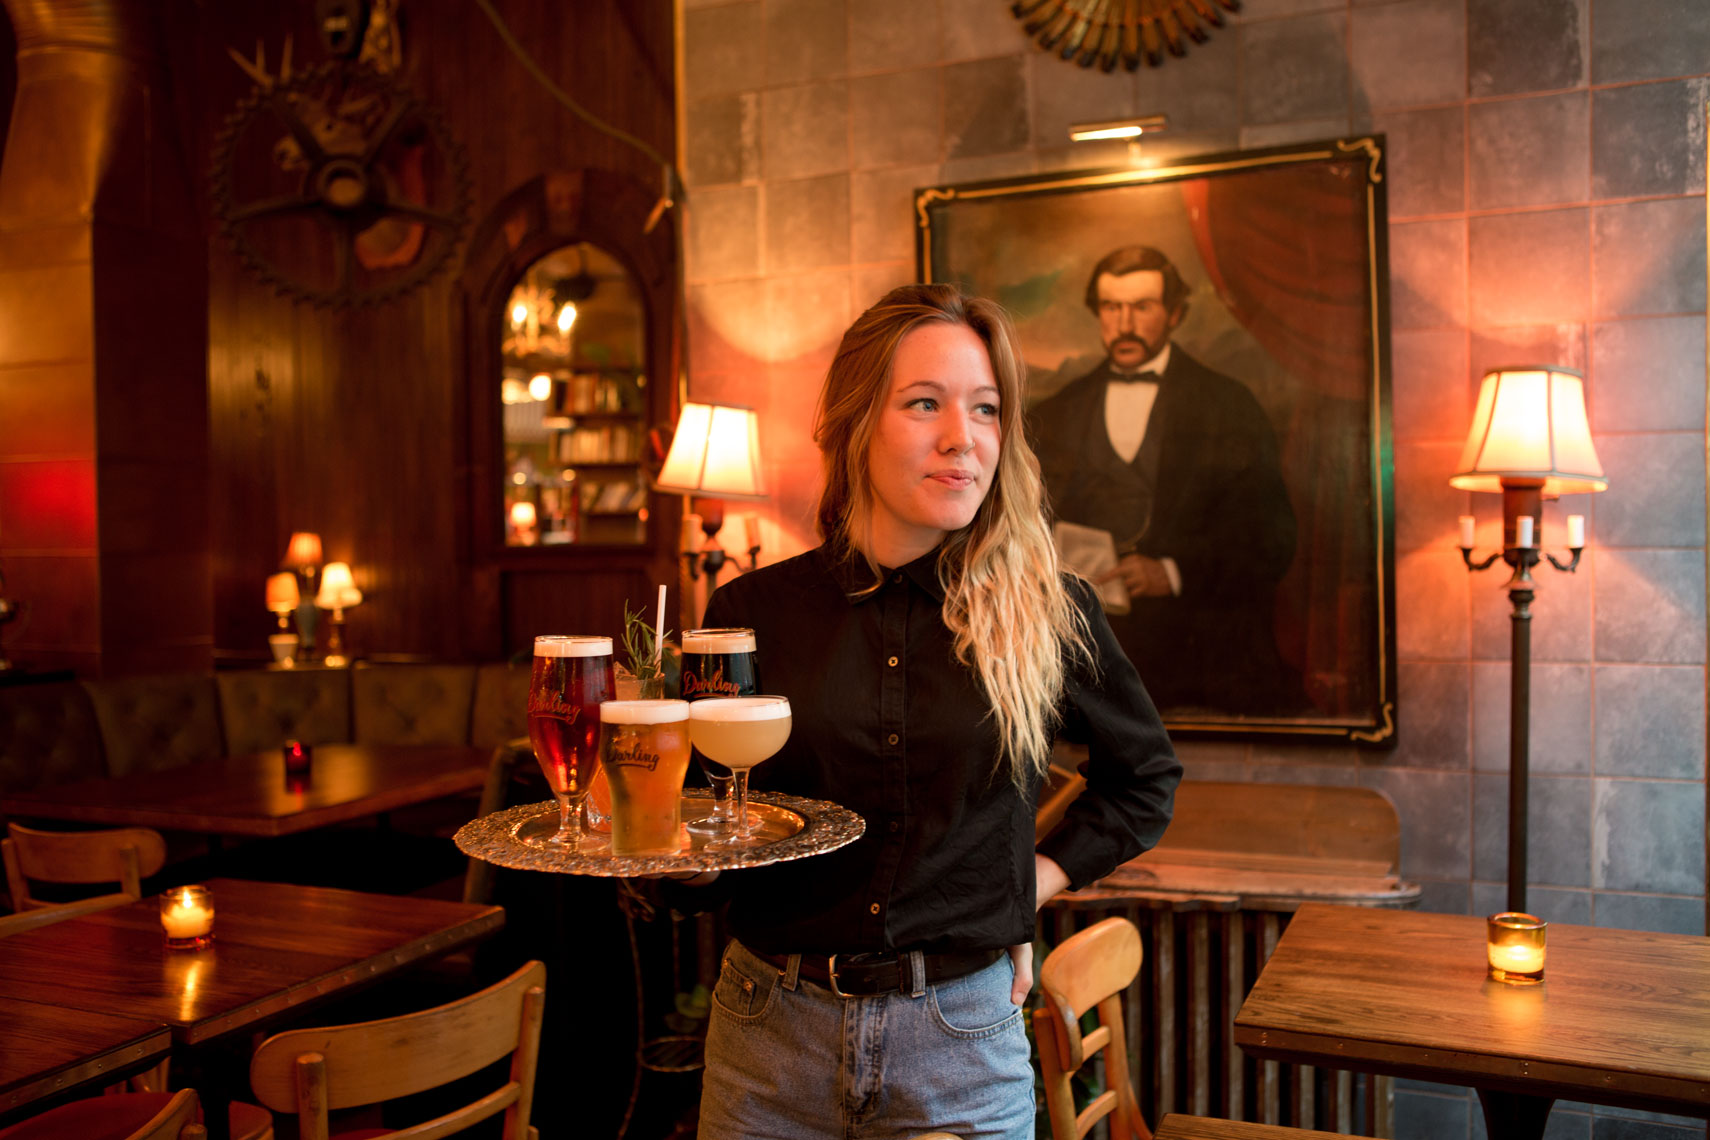 09_Montreal_Kris_Davidson_National_Geographic_Bar_Darling